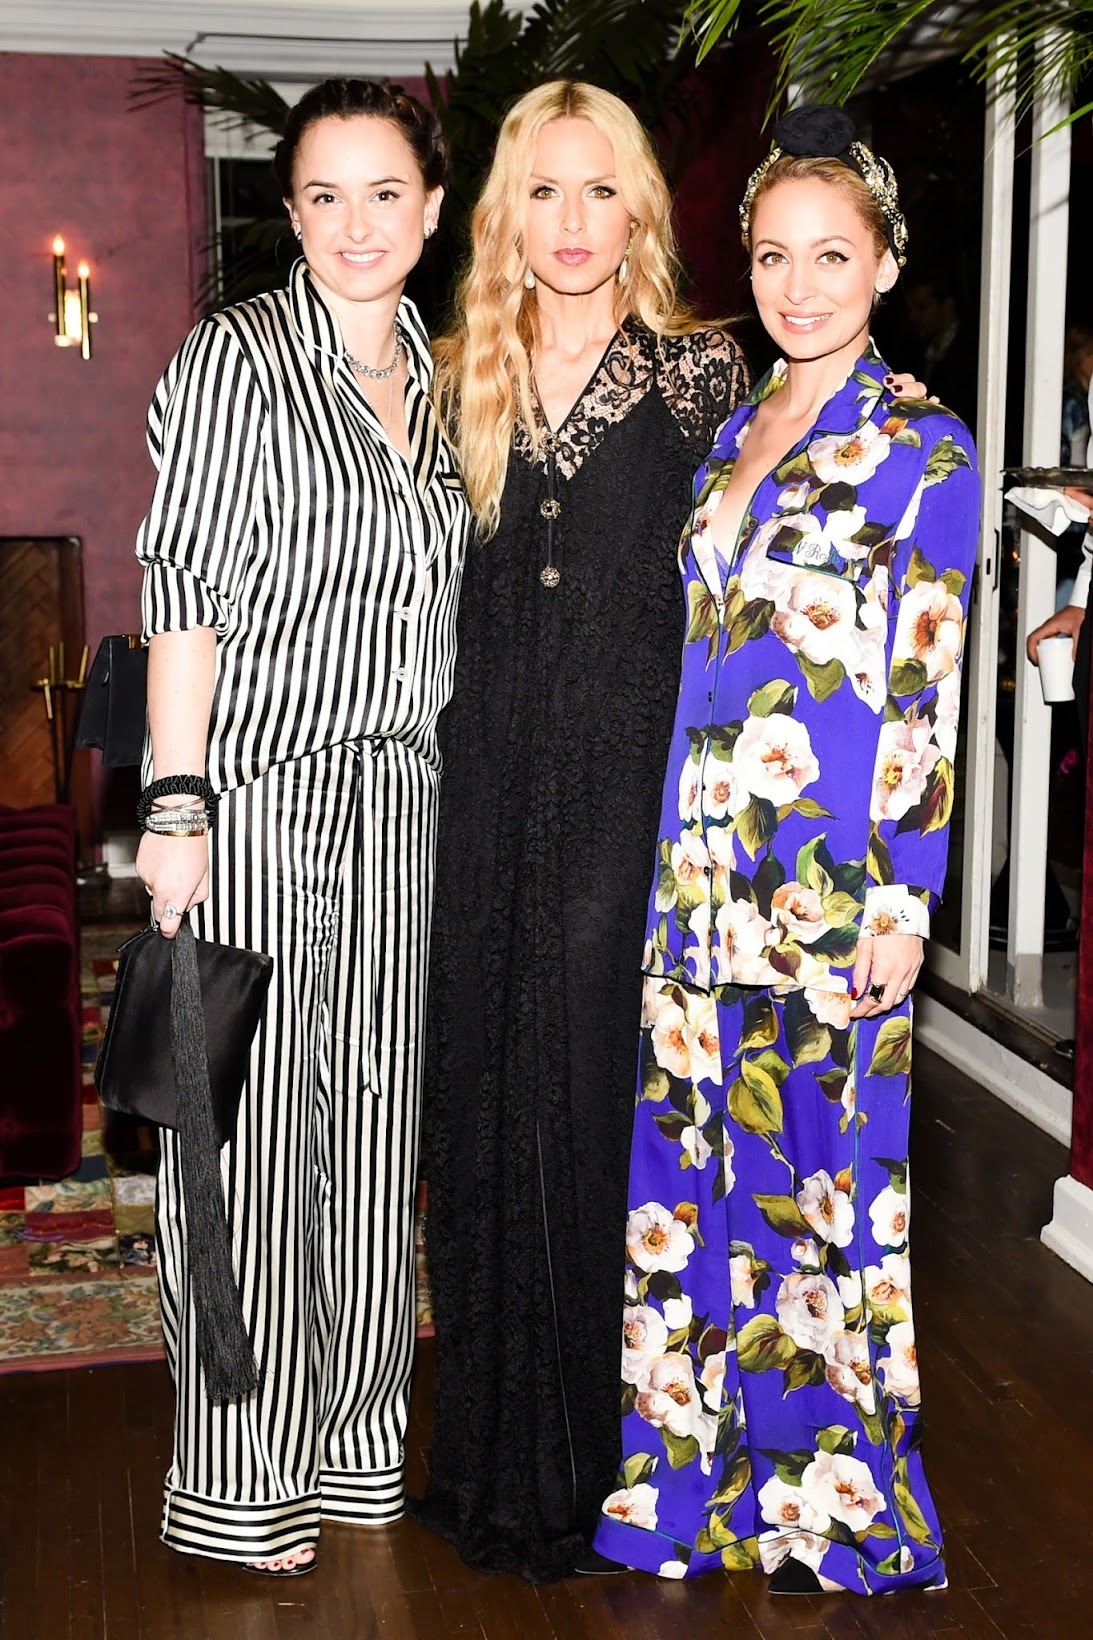 Dolce & Gabbana Pyjama Party 2016